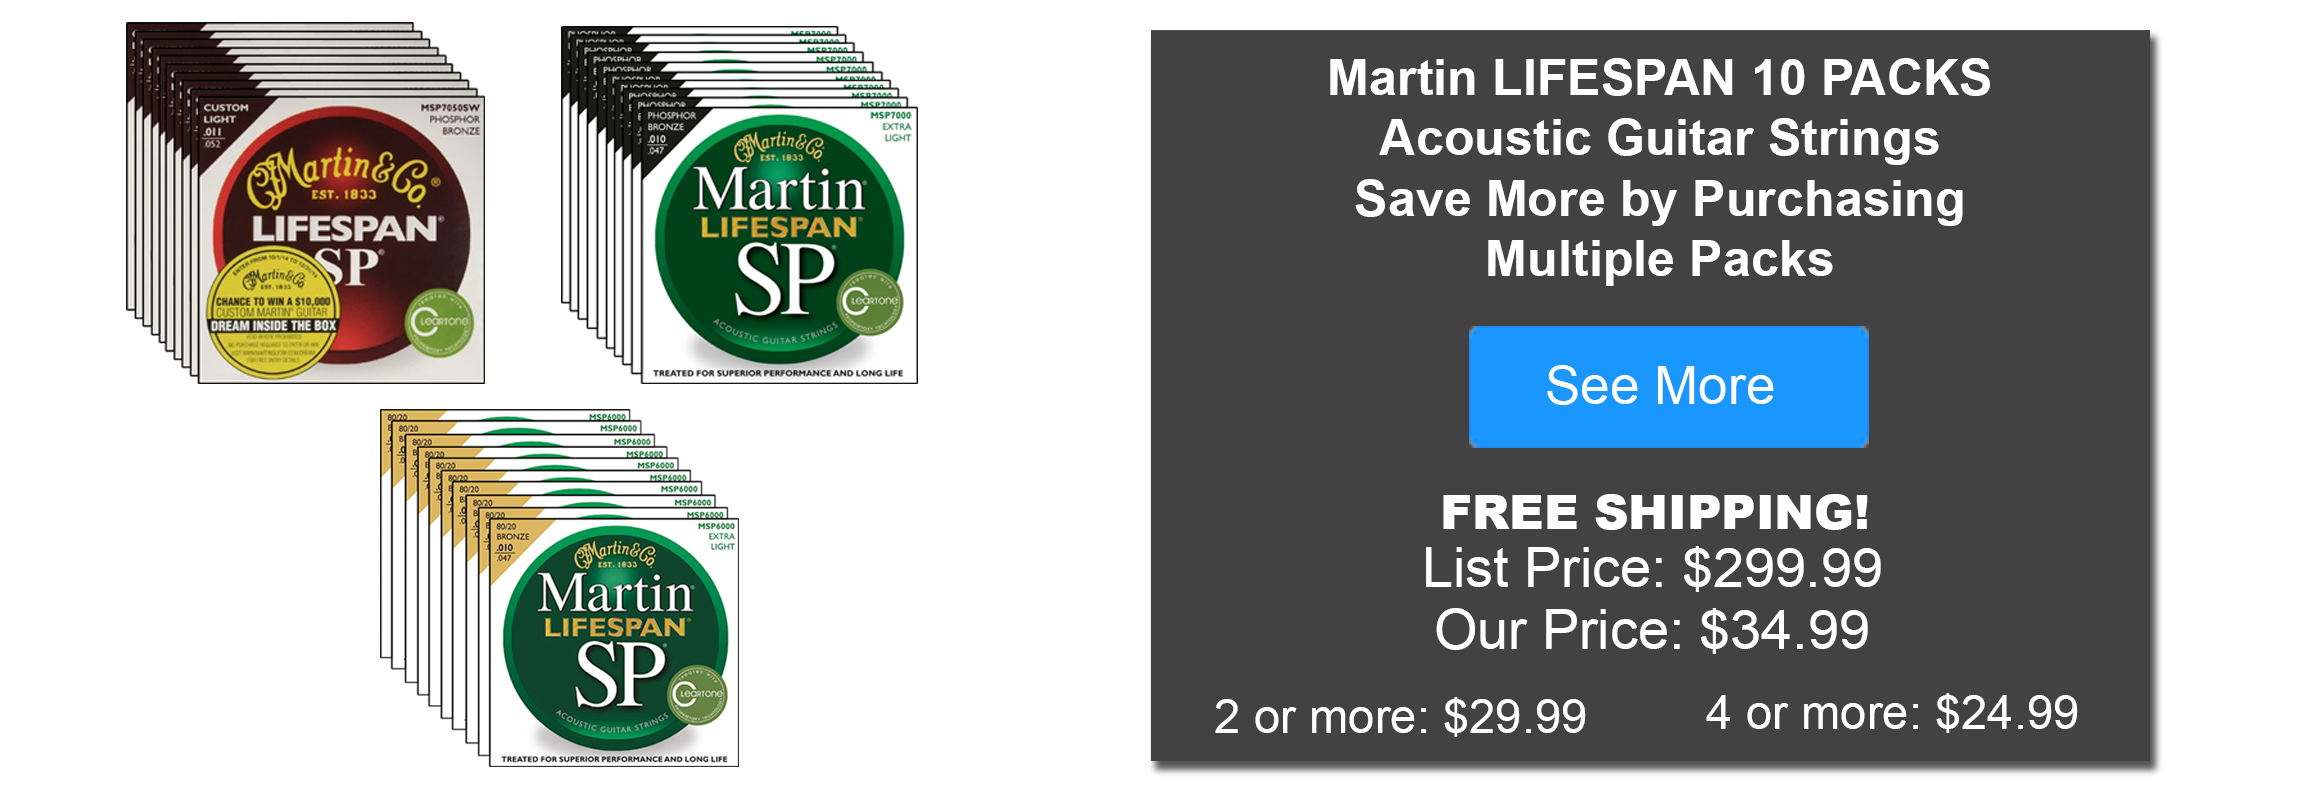 Martin Guitar Strings 10 Packs